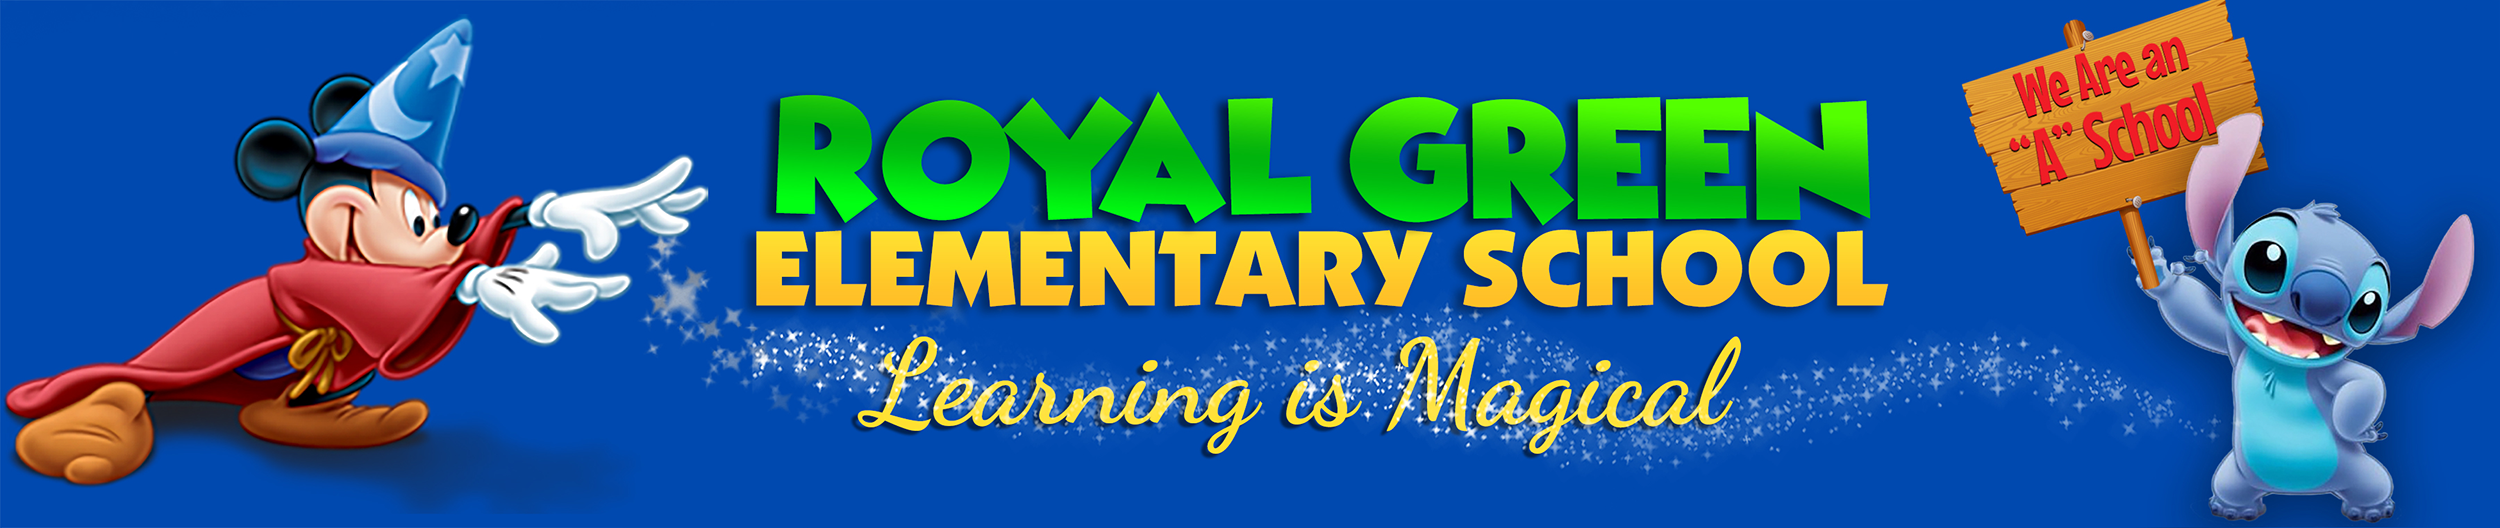 Royal Green Elementary